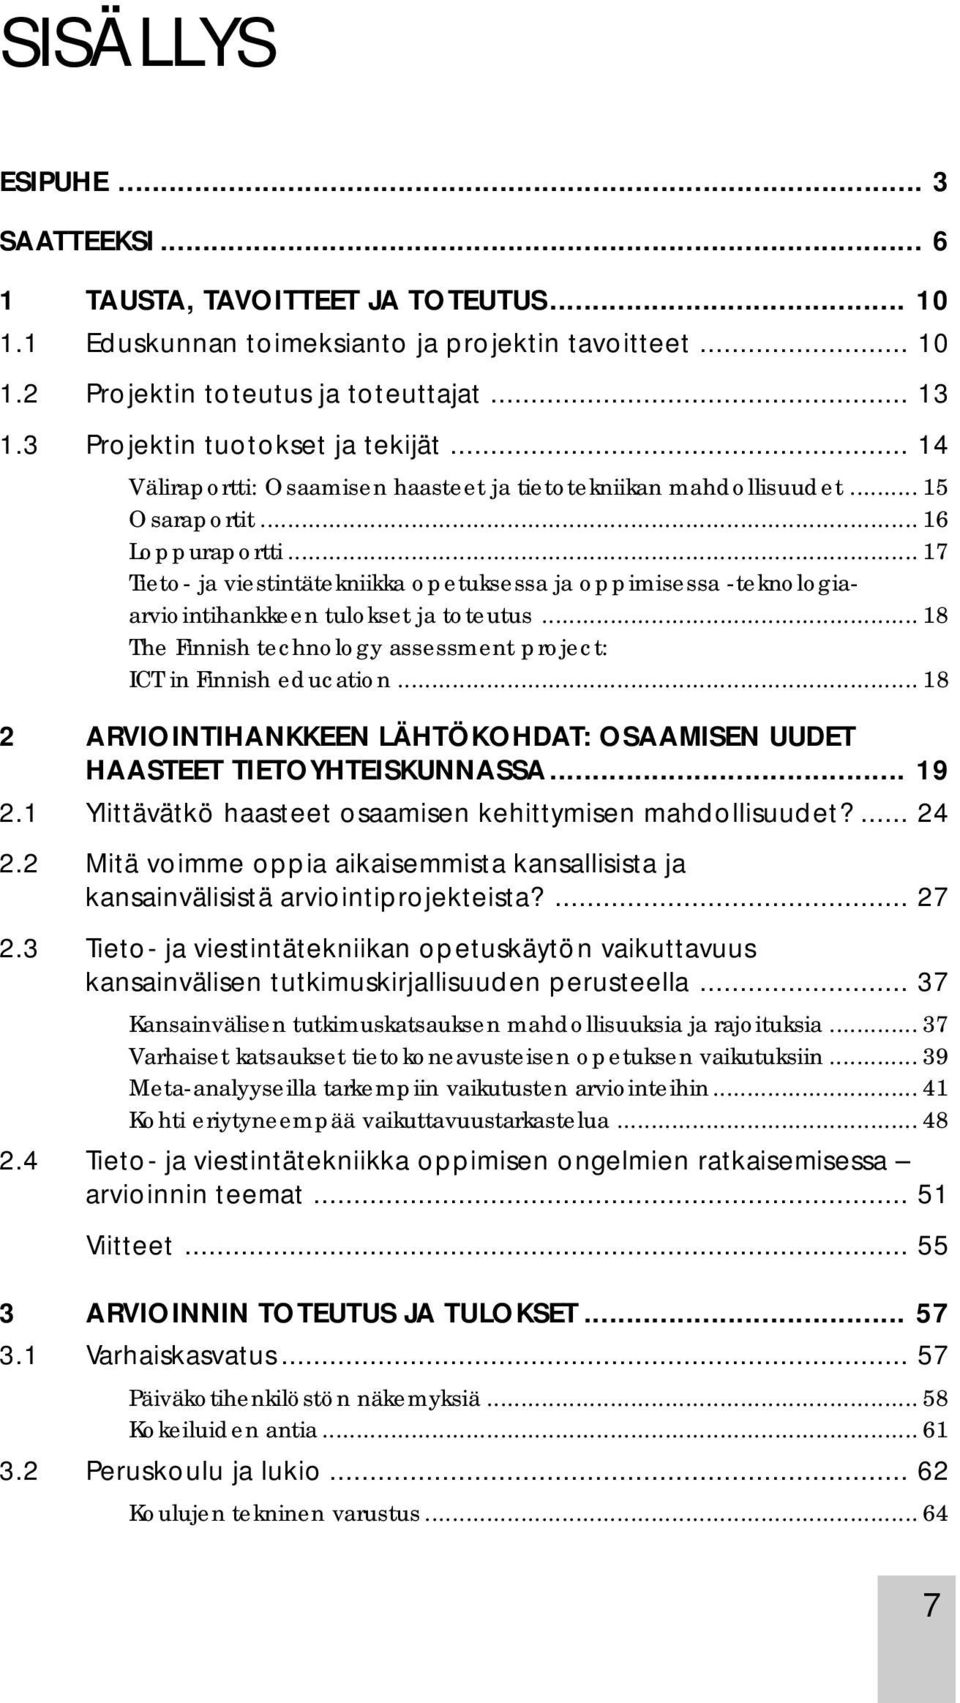 .. 17 Tieto- ja viestintätekniikka opetuksessa ja oppimisessa -teknologiaarviointihankkeen tulokset ja toteutus... 18 The Finnish technology assessment project: ICT in Finnish education.